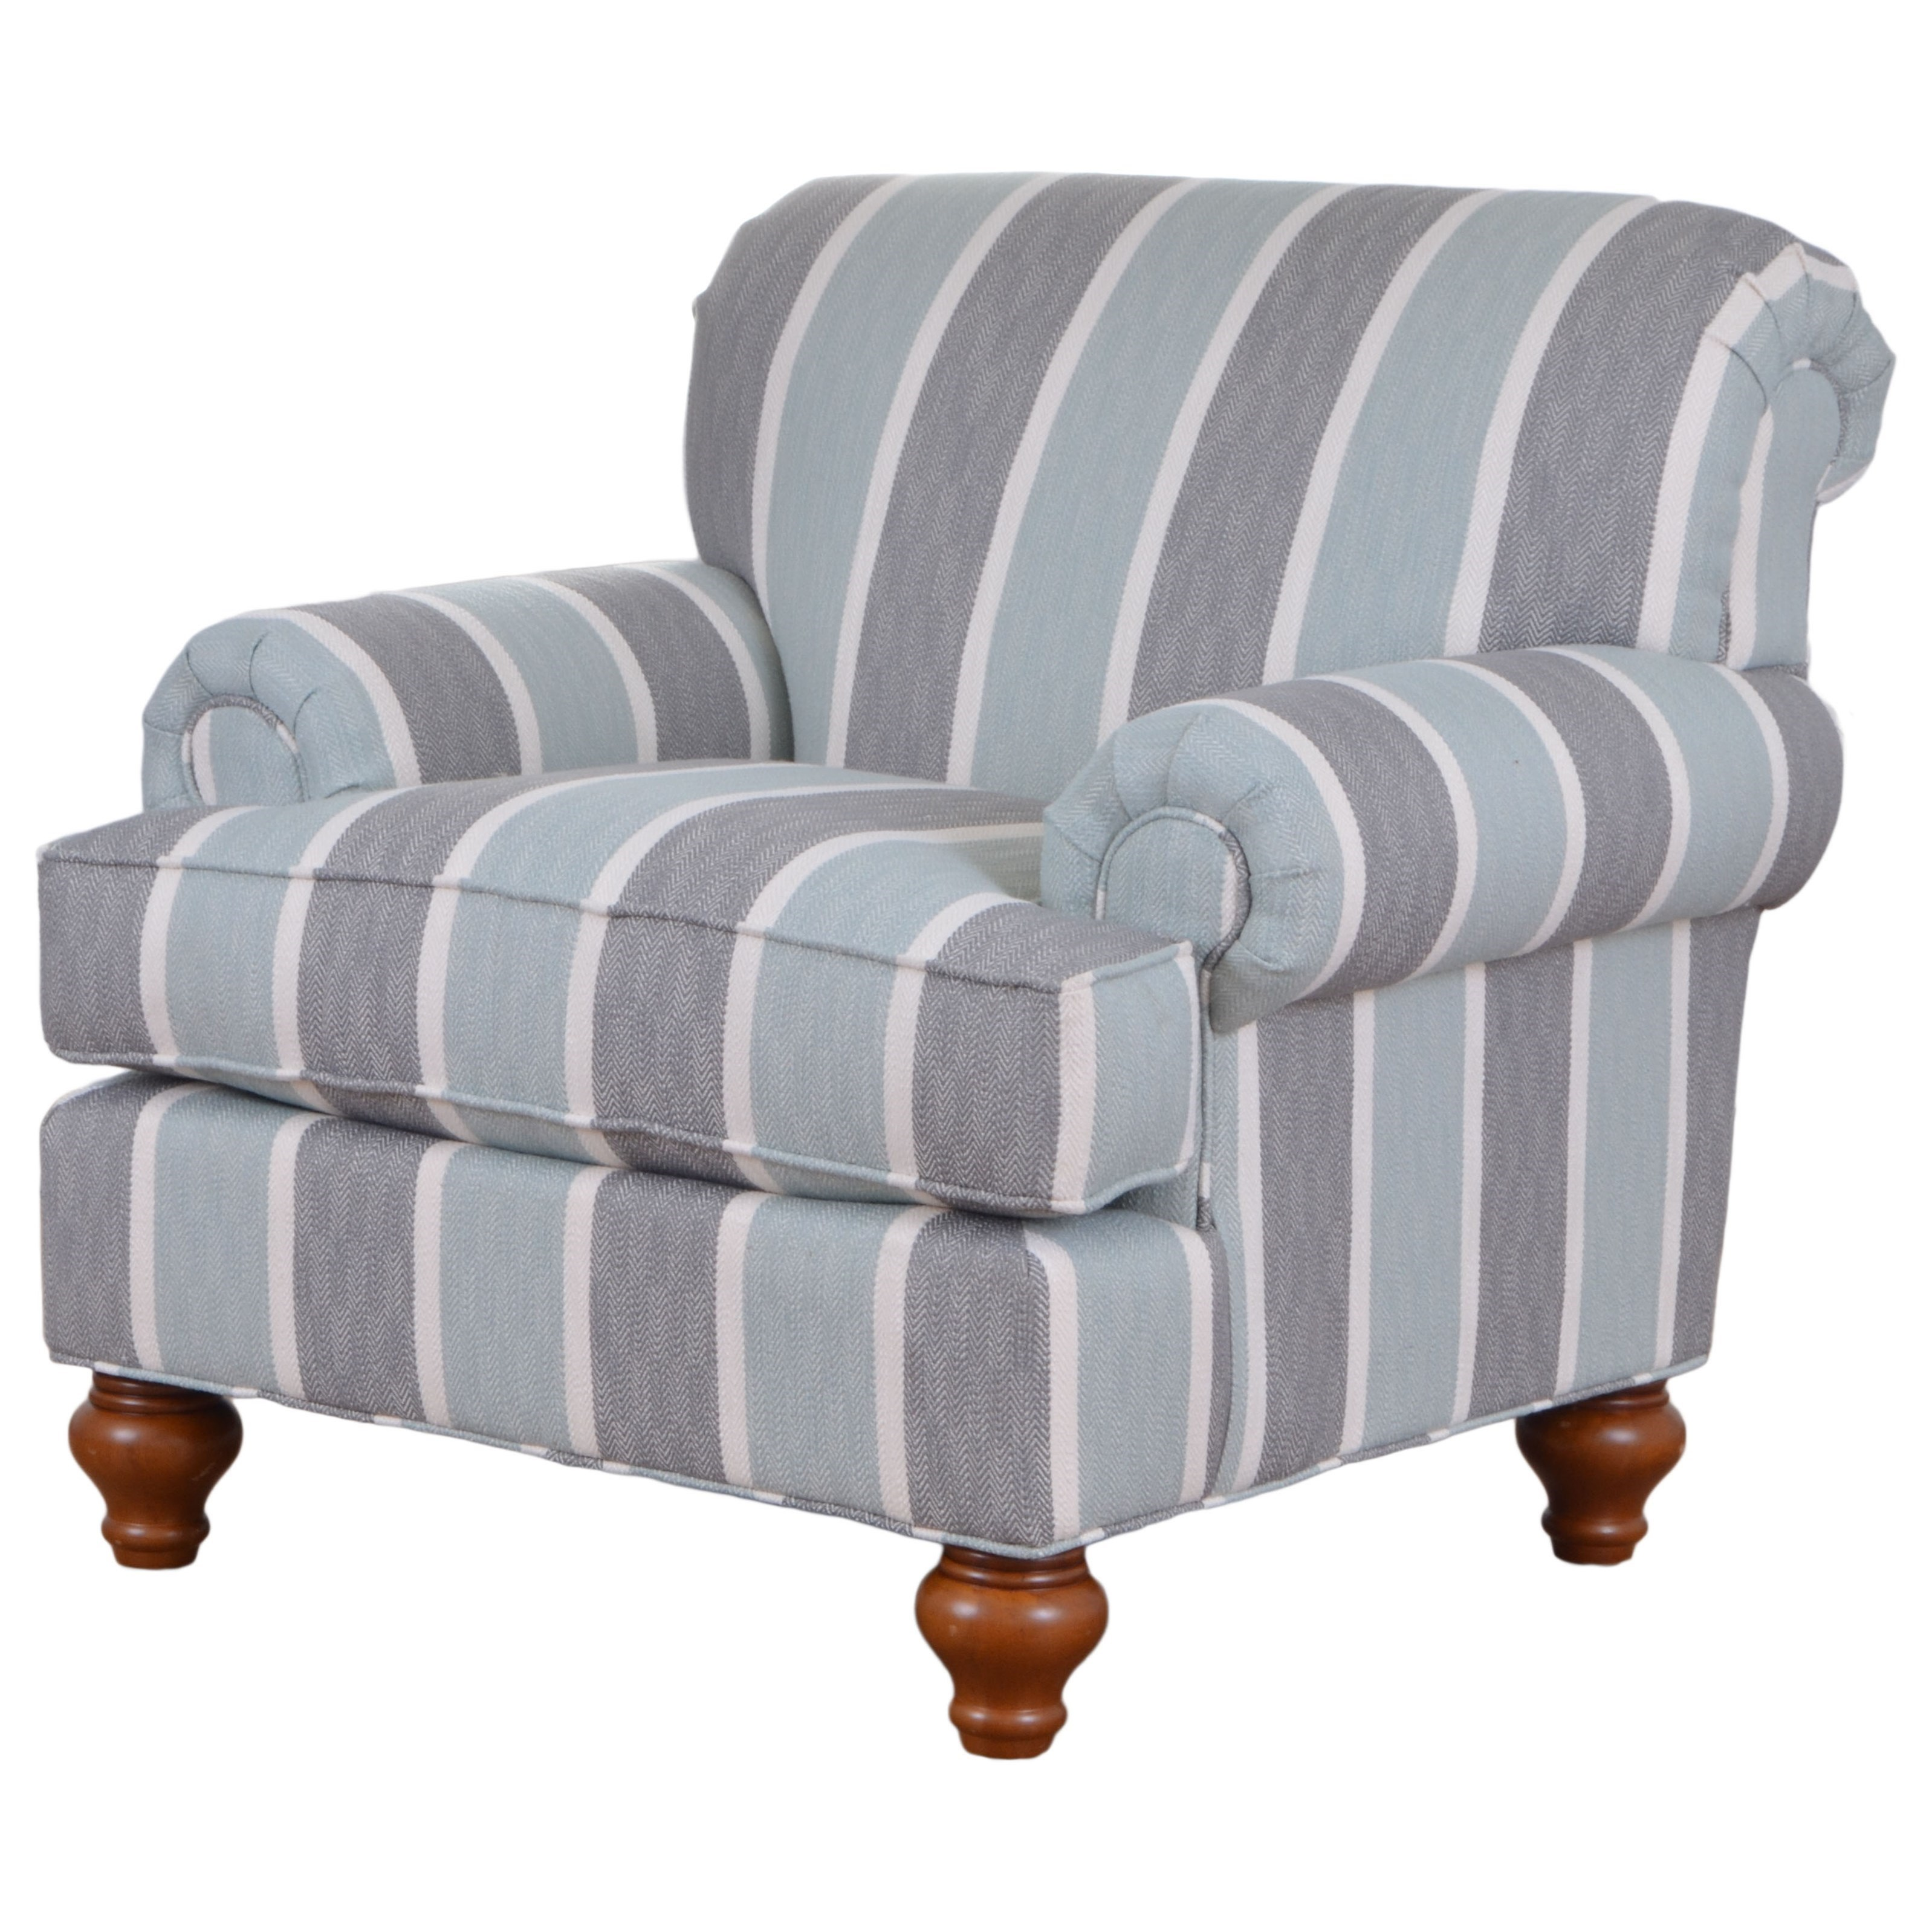 Hickorycraft 7047 Traditional Upholstered Chair With